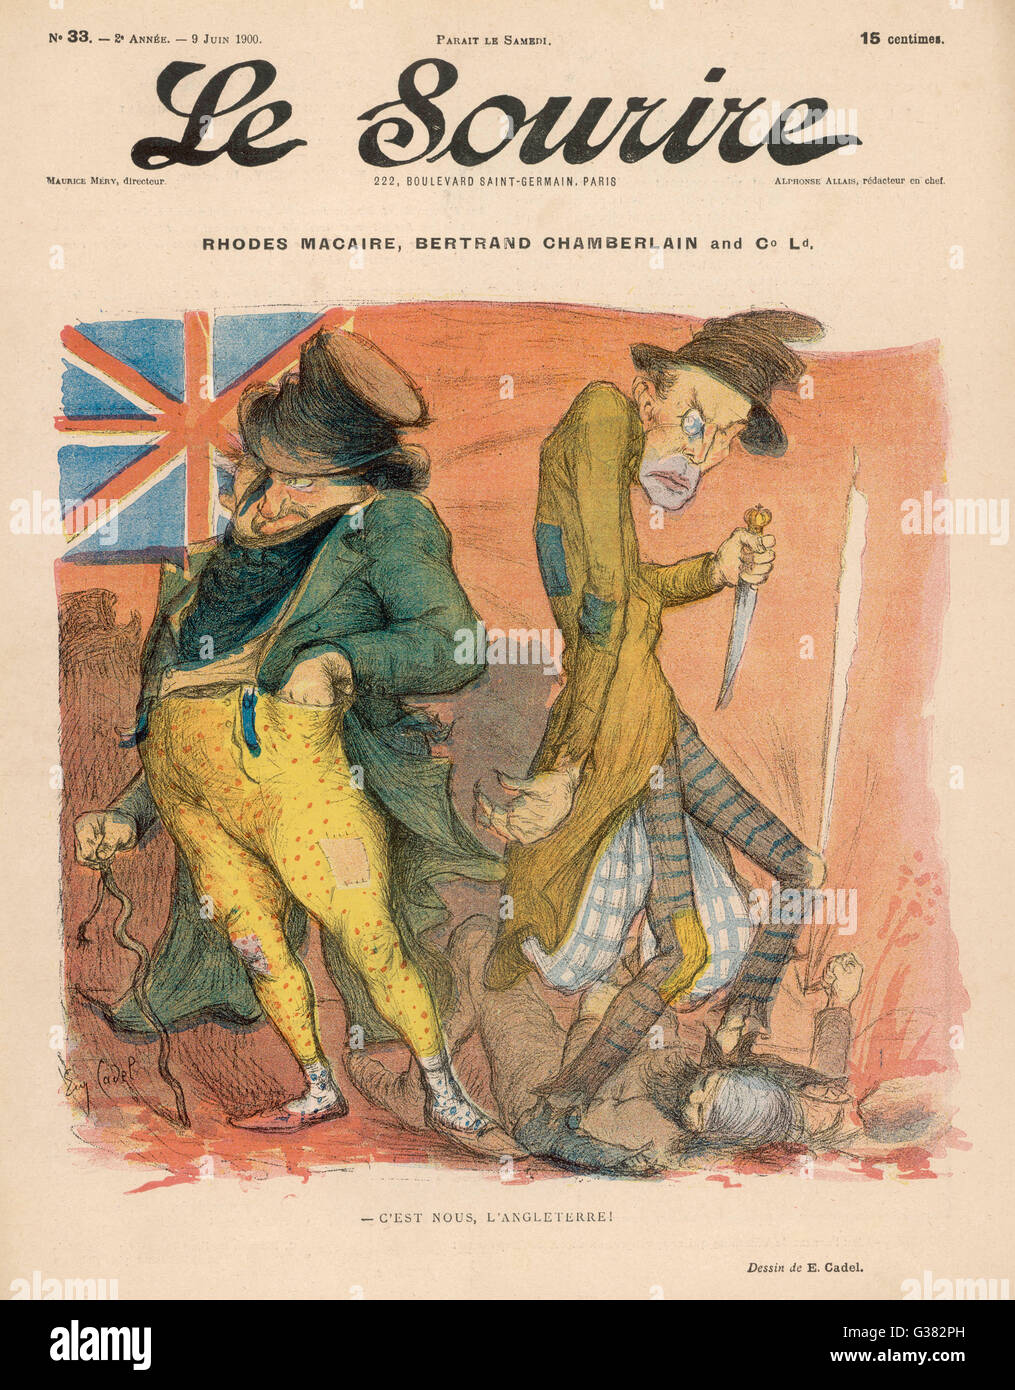 A perfidious John Bull in league with Jack the Ripper -  this is the true nature of England.  Satire on Cecil  Rhodes - Stock Image